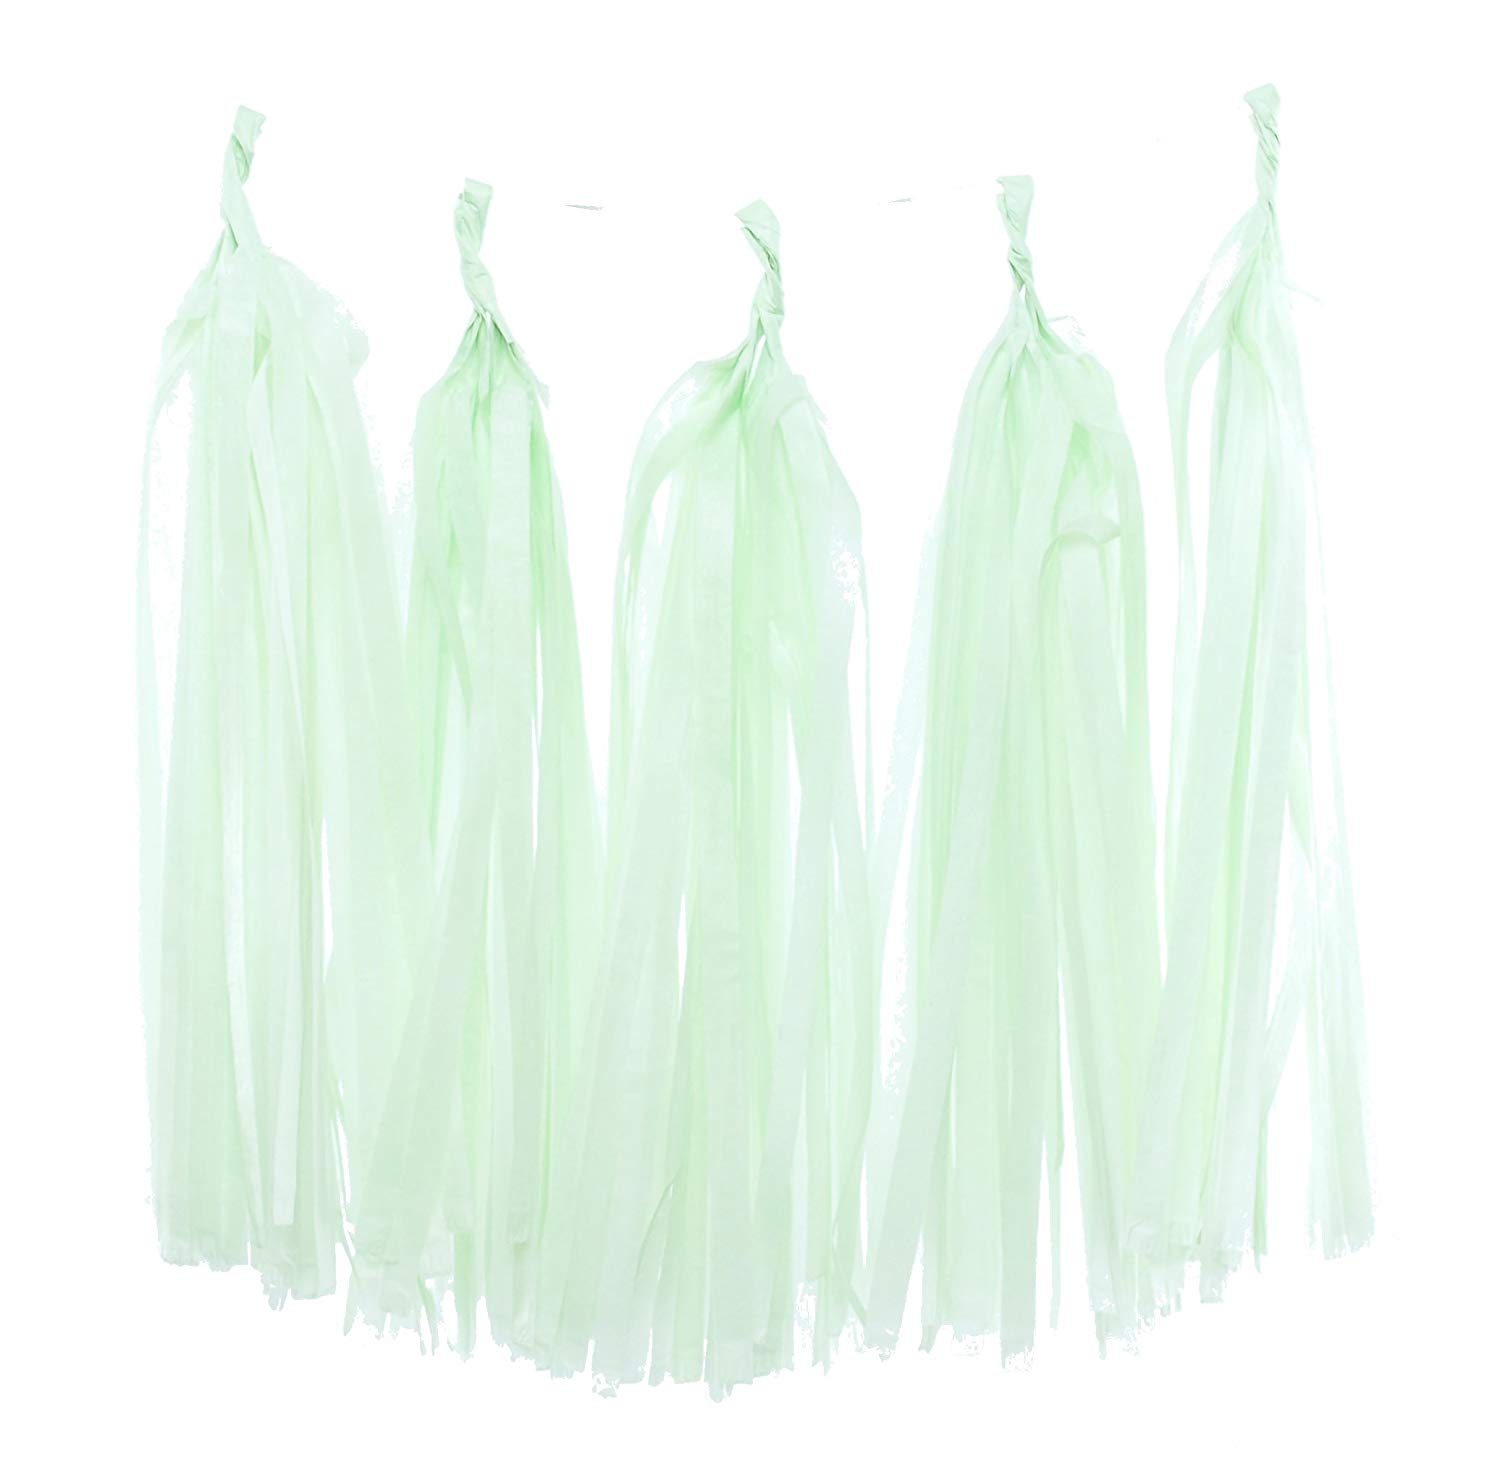 Tissue Paper Garland, Mint Green Party Tassels (Set of 5) - Party Backdrops, Tassel Banner, Light Green Wedding Streamers, Baby Shower Party Supplies